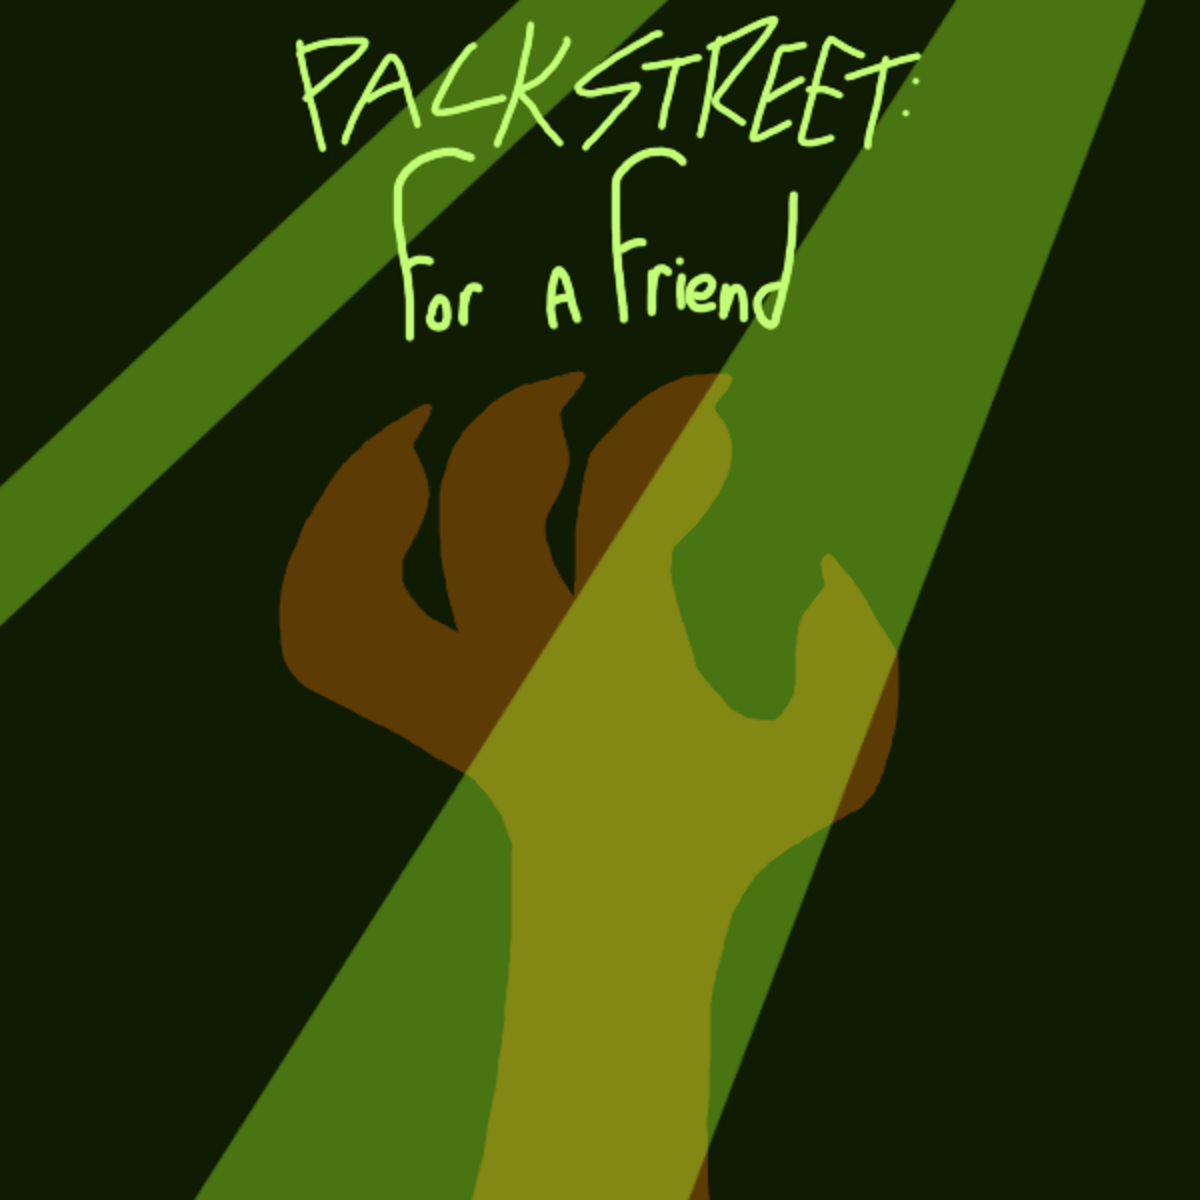 New Packstreet: For a Friend. Link to story: It's important to look out for your friends... HEY! ALL Y'ALL WHO LIKE PACK STREET AND WANT MORE! WEAVER NEEDS MONEY, THEY HAVE LESS THAN USUAL GO HERE